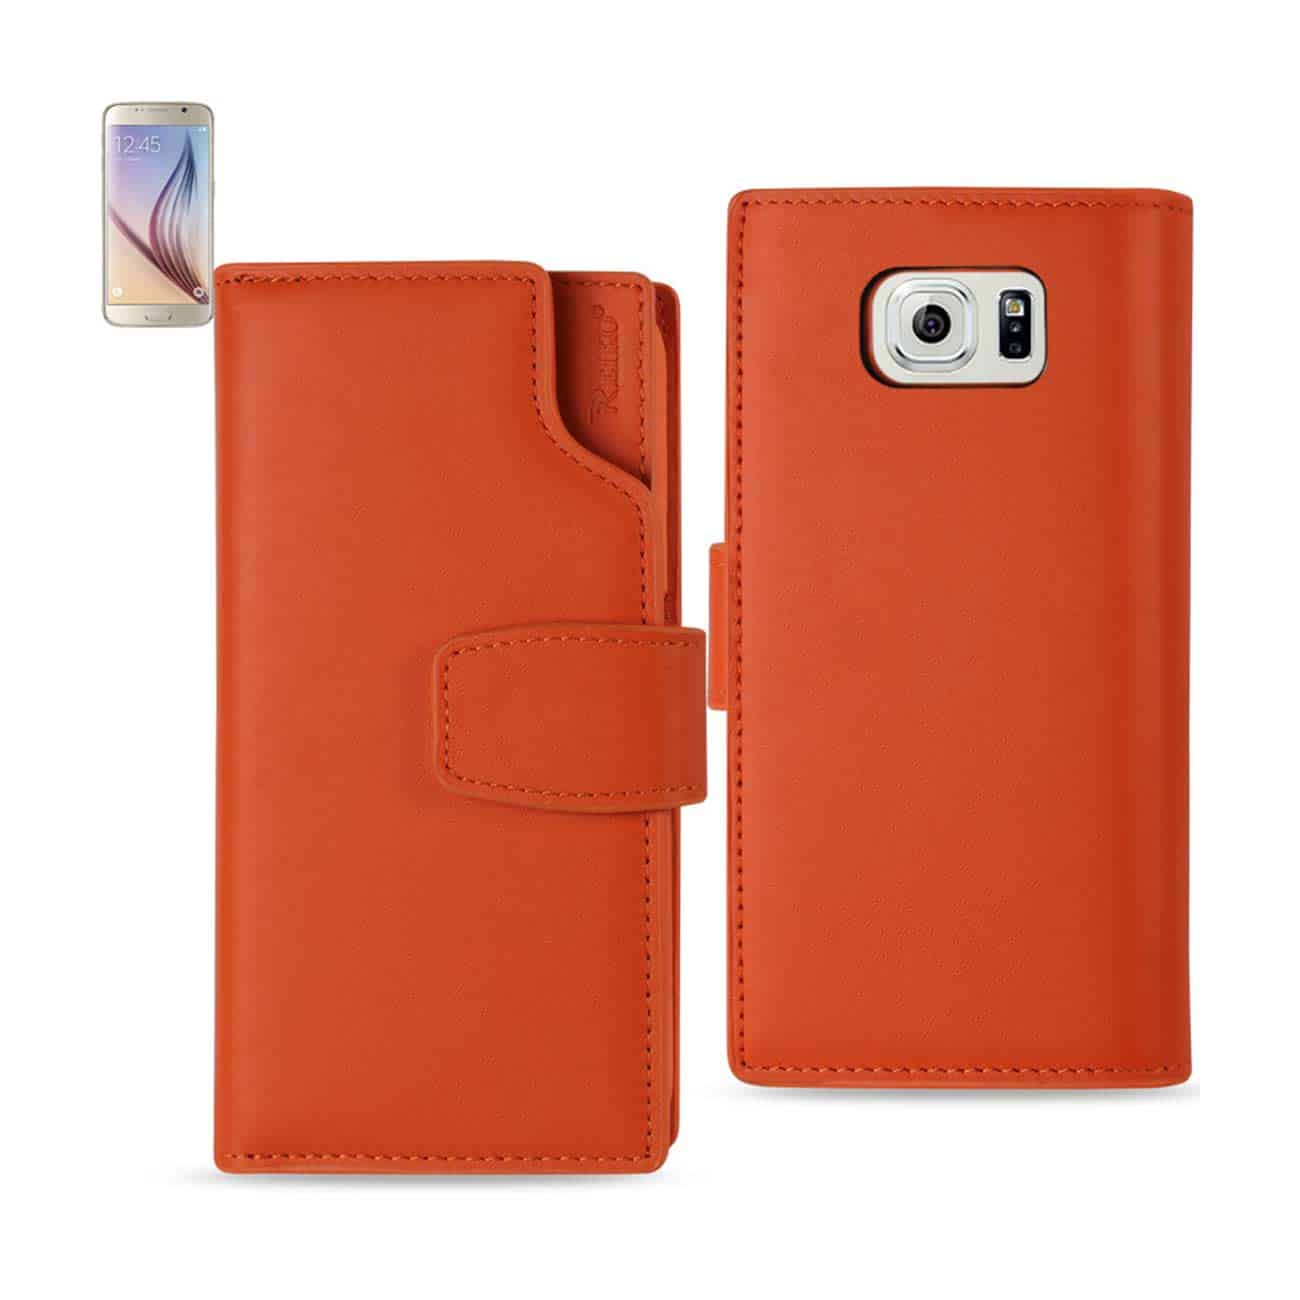 SAMSUNG GALAXY S6 GENUINE LEATHER WALLET CASE WITH OPEN THUMB CUT IN TANGERINE